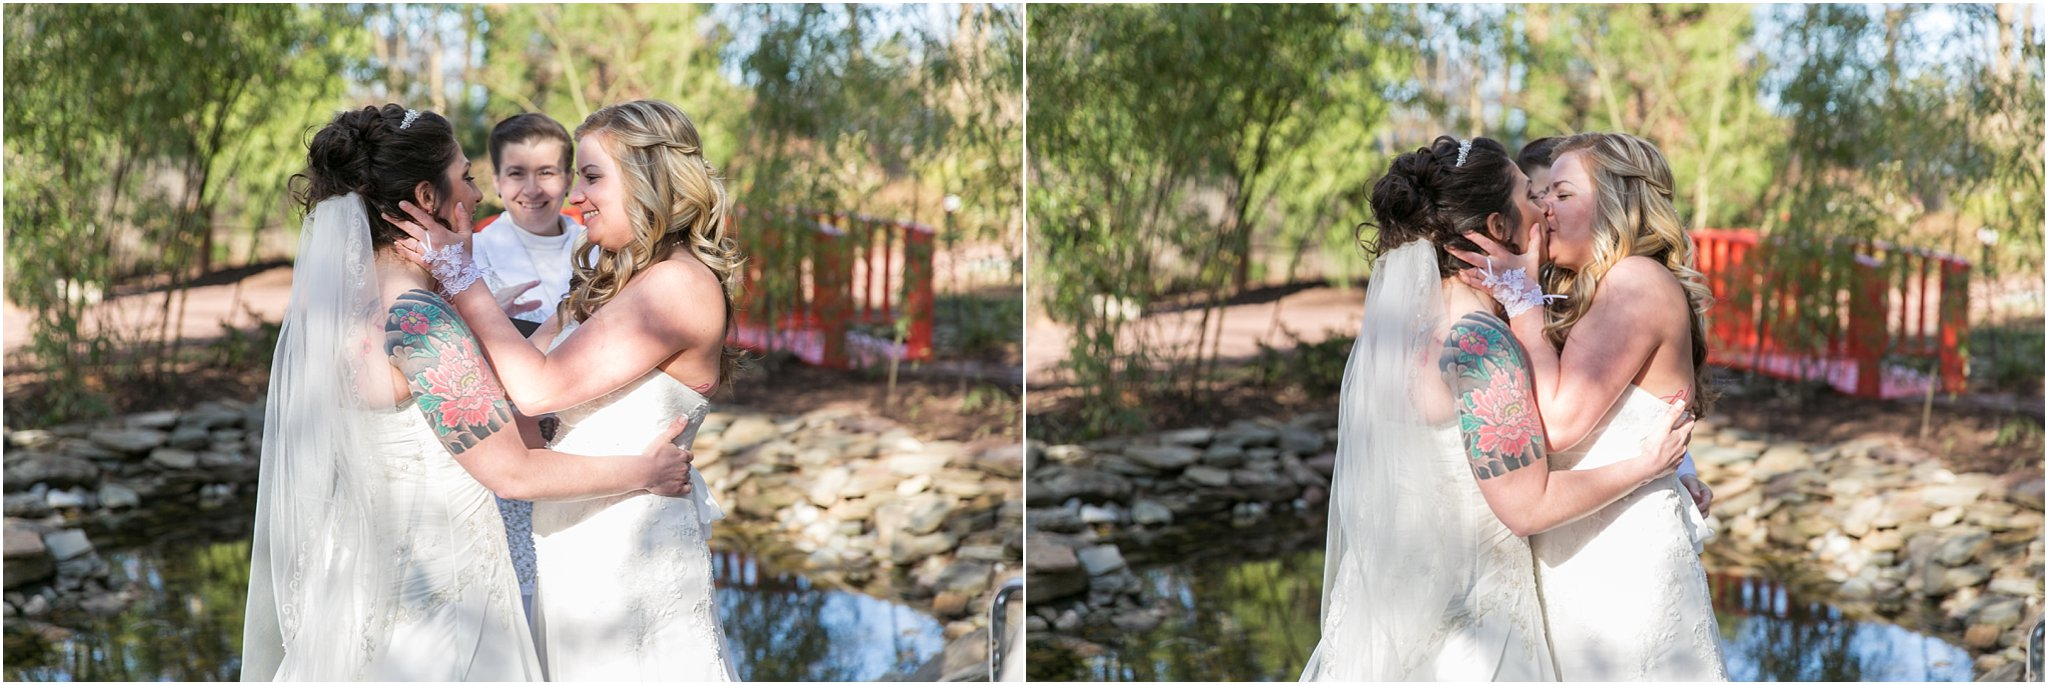 jessica_ryan_photography_redwingpark_wedding_virginia_beach_hampton_roads_1242